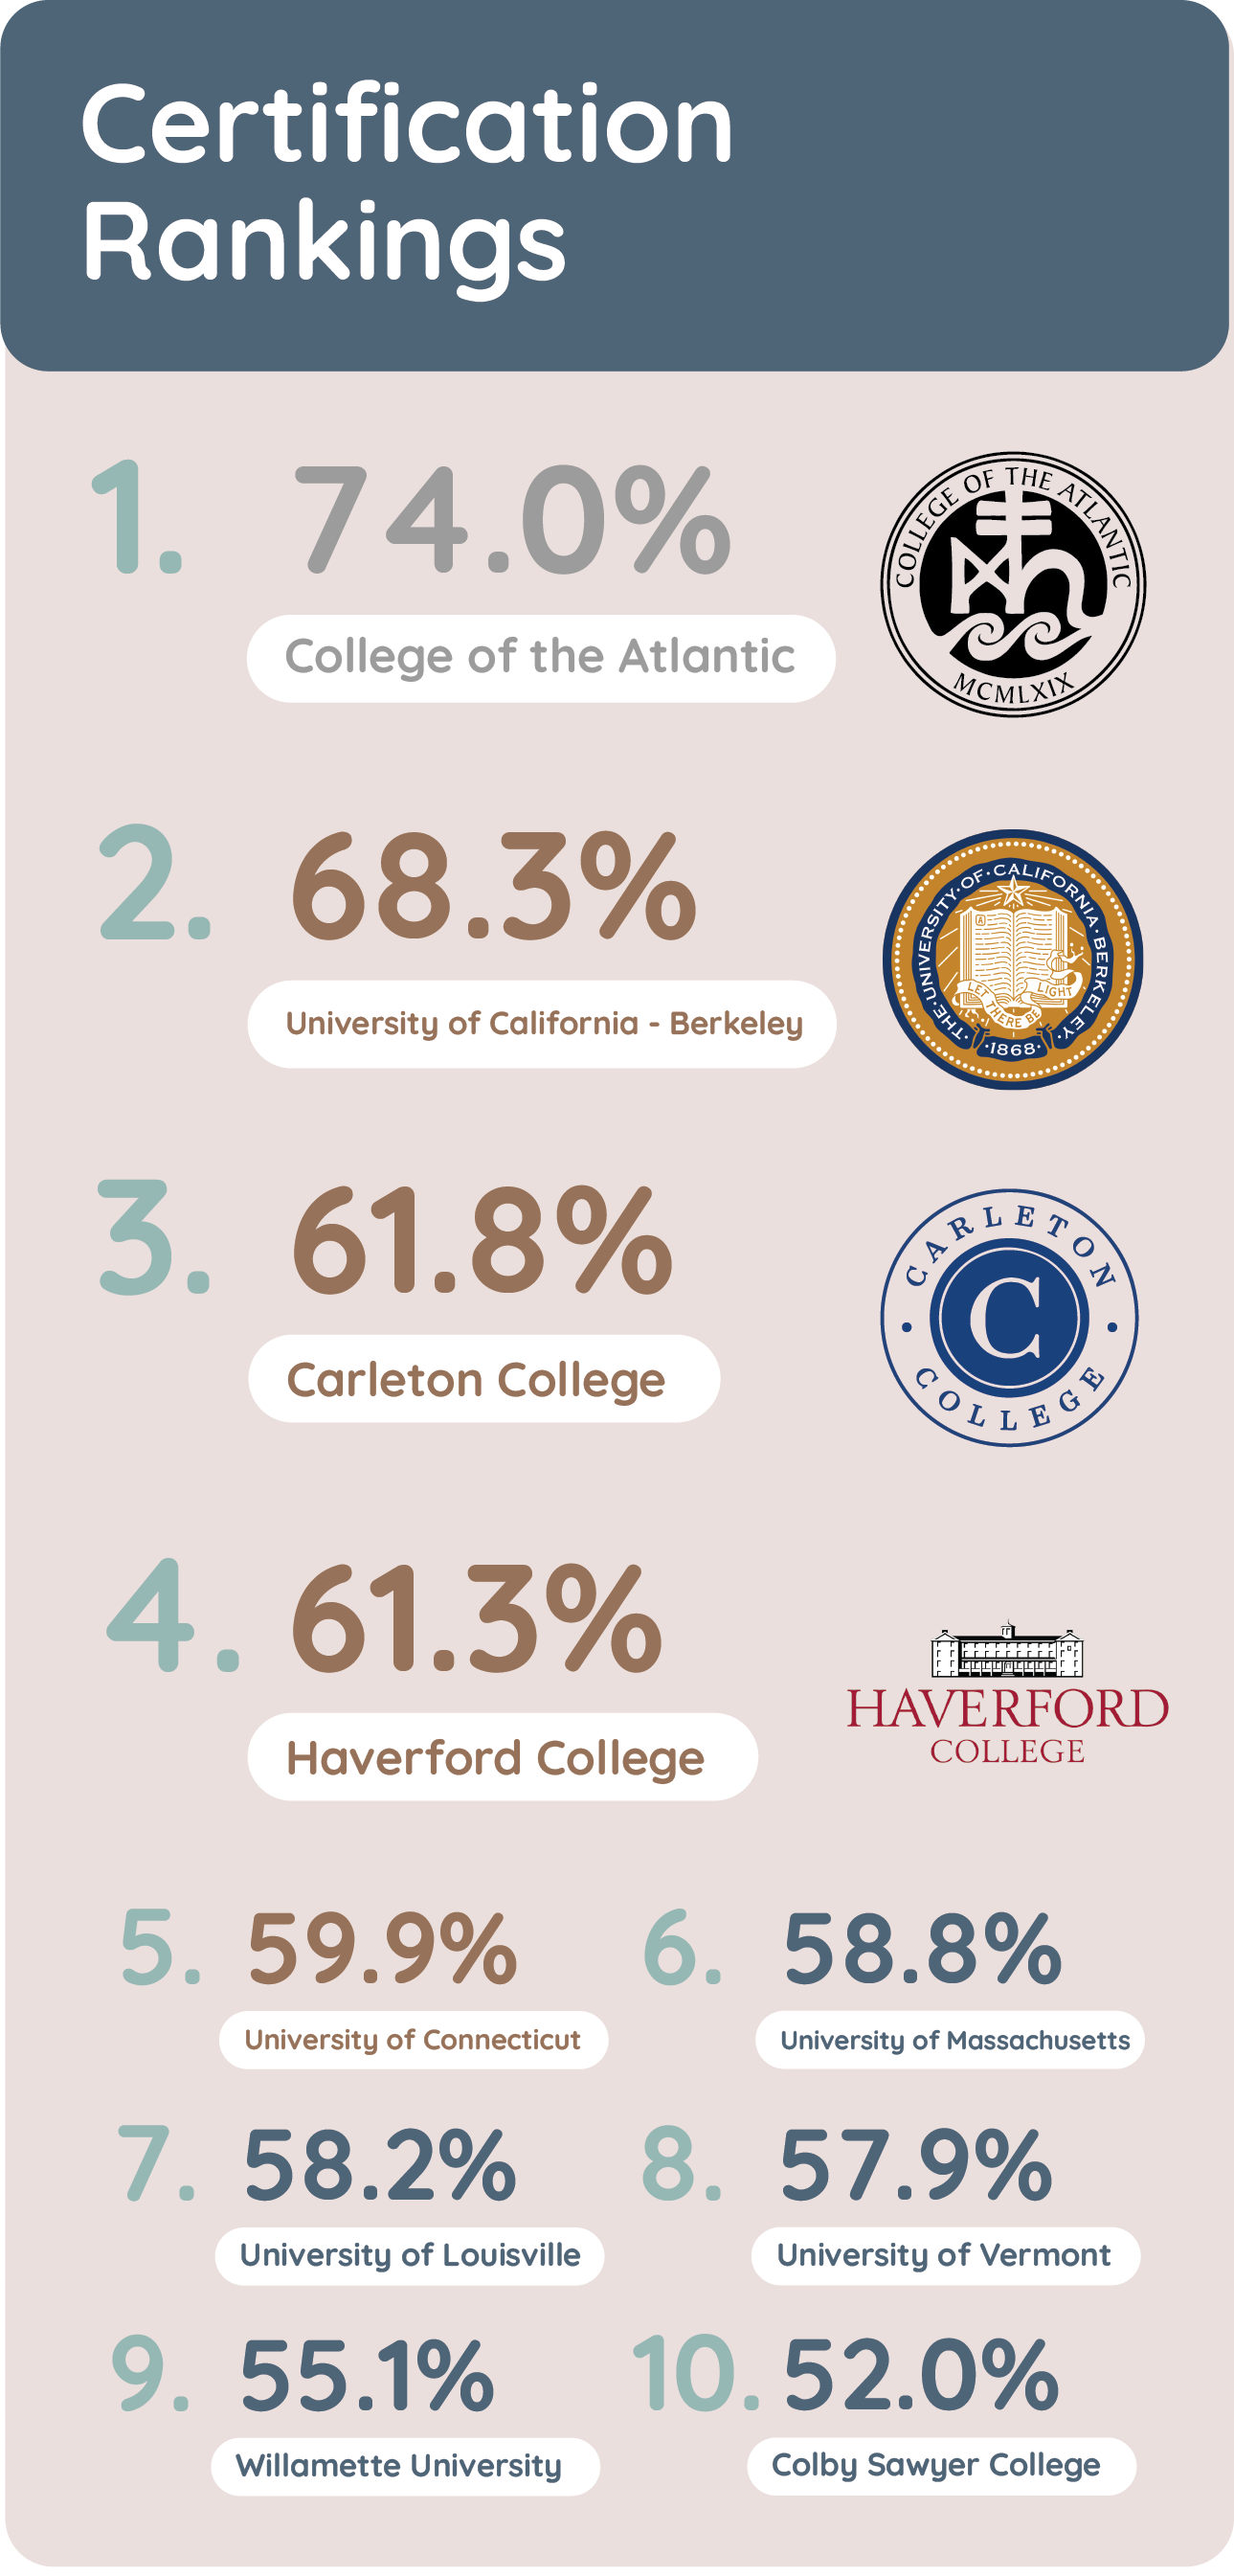 Chart showing the certification score and ranking of the top 10 campuses. 1. College of the Atlantic, 2. UC Berkeley, 3. Carleton College, 4. Haverford College, 5. U Connecticut, 6. U Massachusettes, 7. U Louisville, 8. U Vermont, 9. Willamette, 10. Colby Sawyer College.